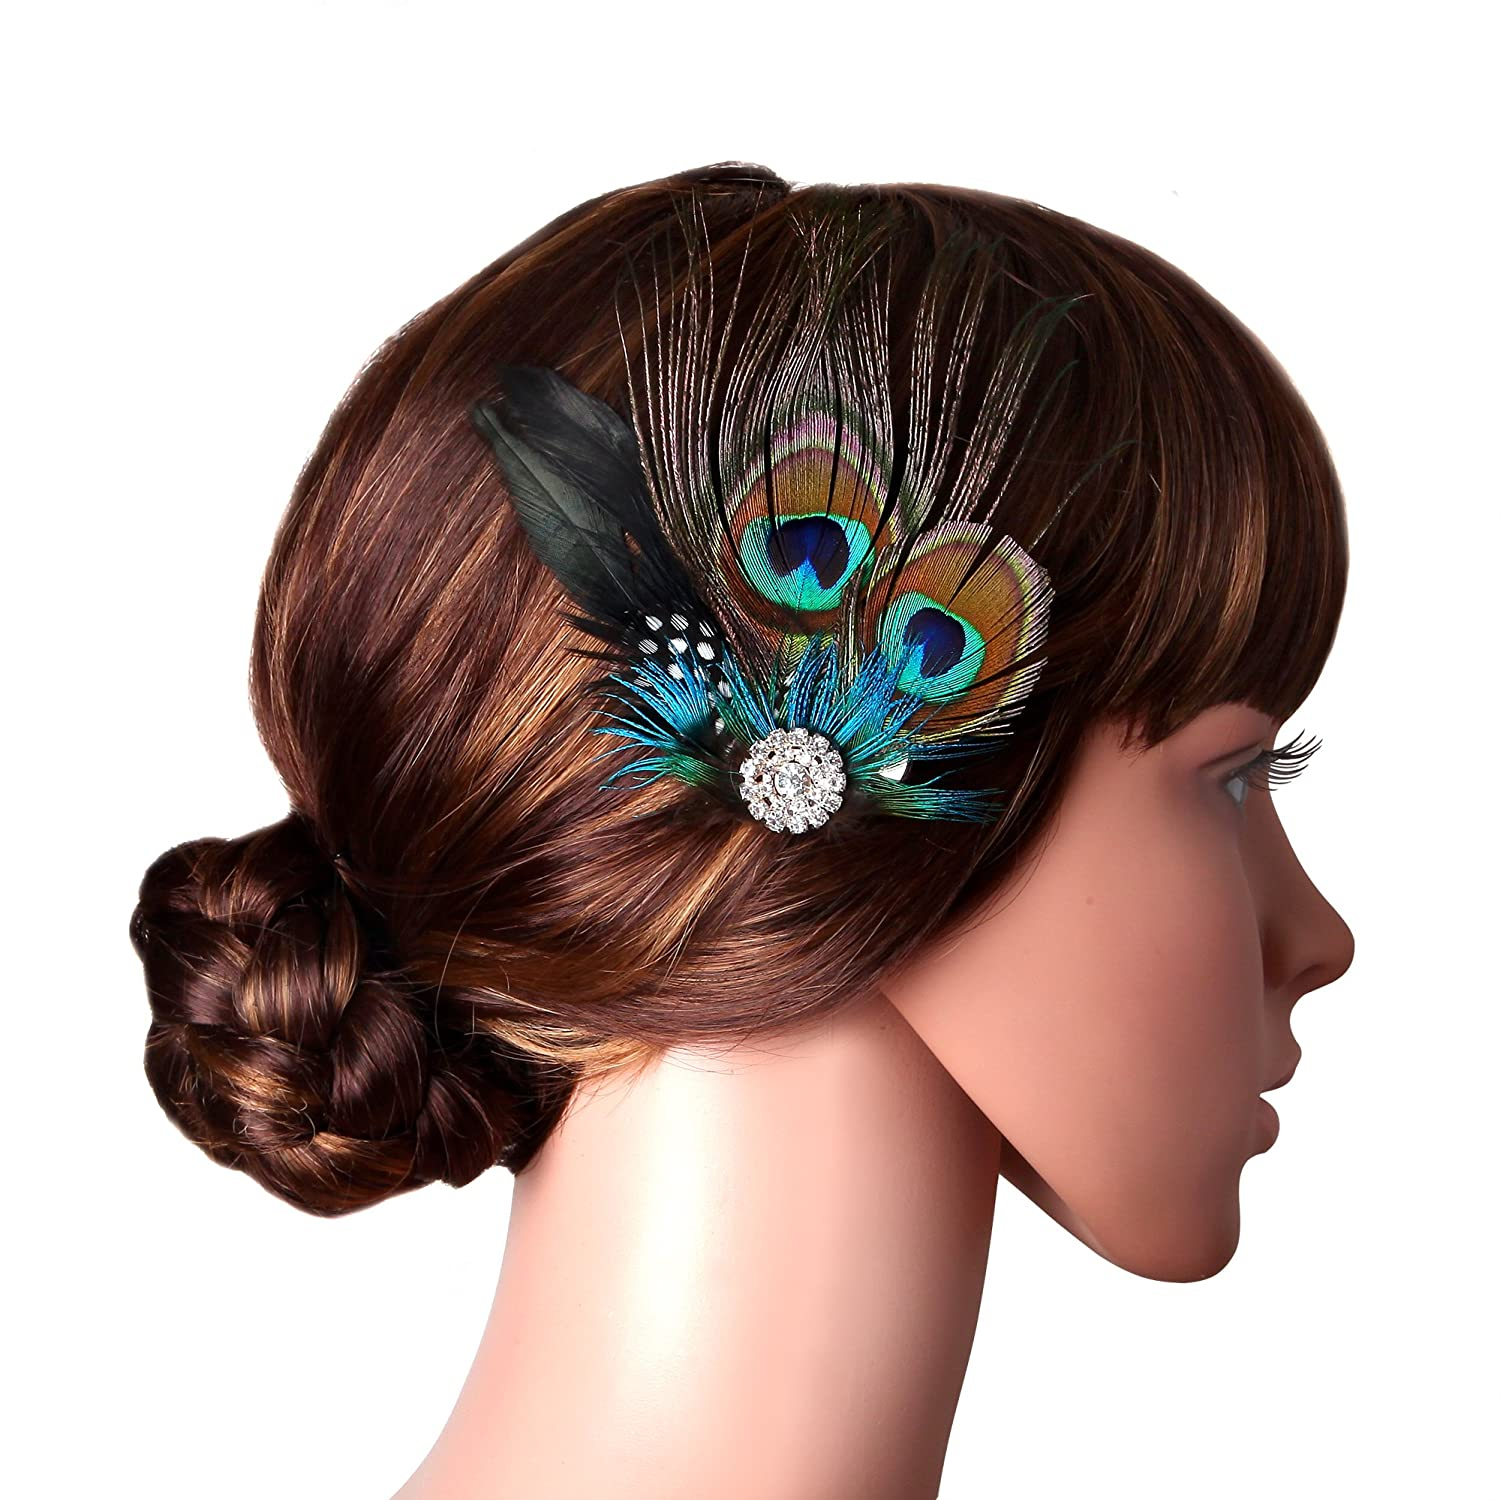 1578cc5cba2d3 Amazon.com   BABEYOND Peacock Feather Hair Clip Peacock Fascinator with  Rhinestones Roaring 20s Peacock Flapper Fascinator 1920s Peacock Hair  Accessories ...